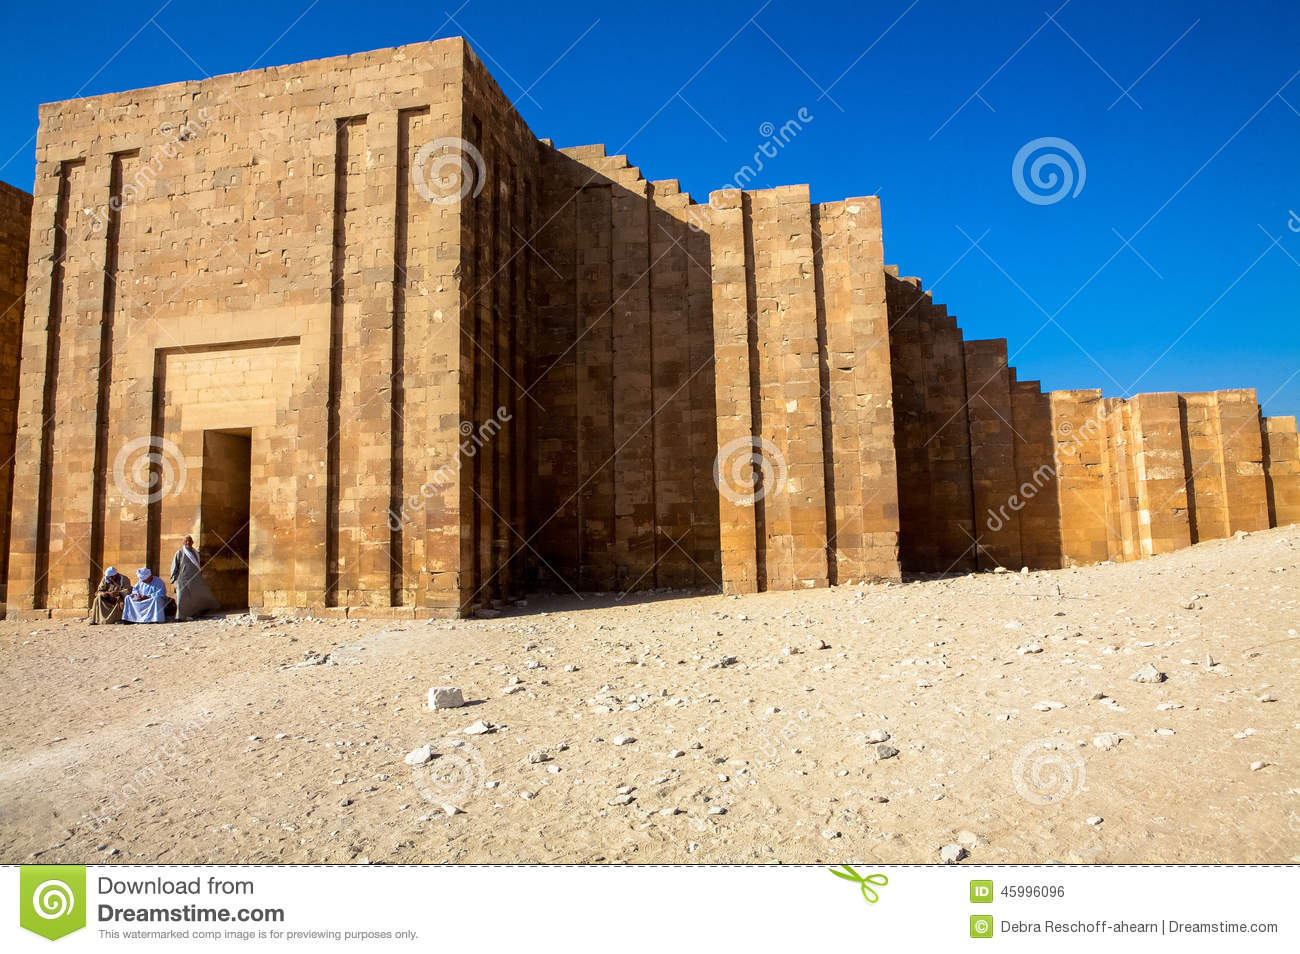 Egypt's 4,600-year-old pyramid of Zoser: a history of cities in 50 buildings, day 1